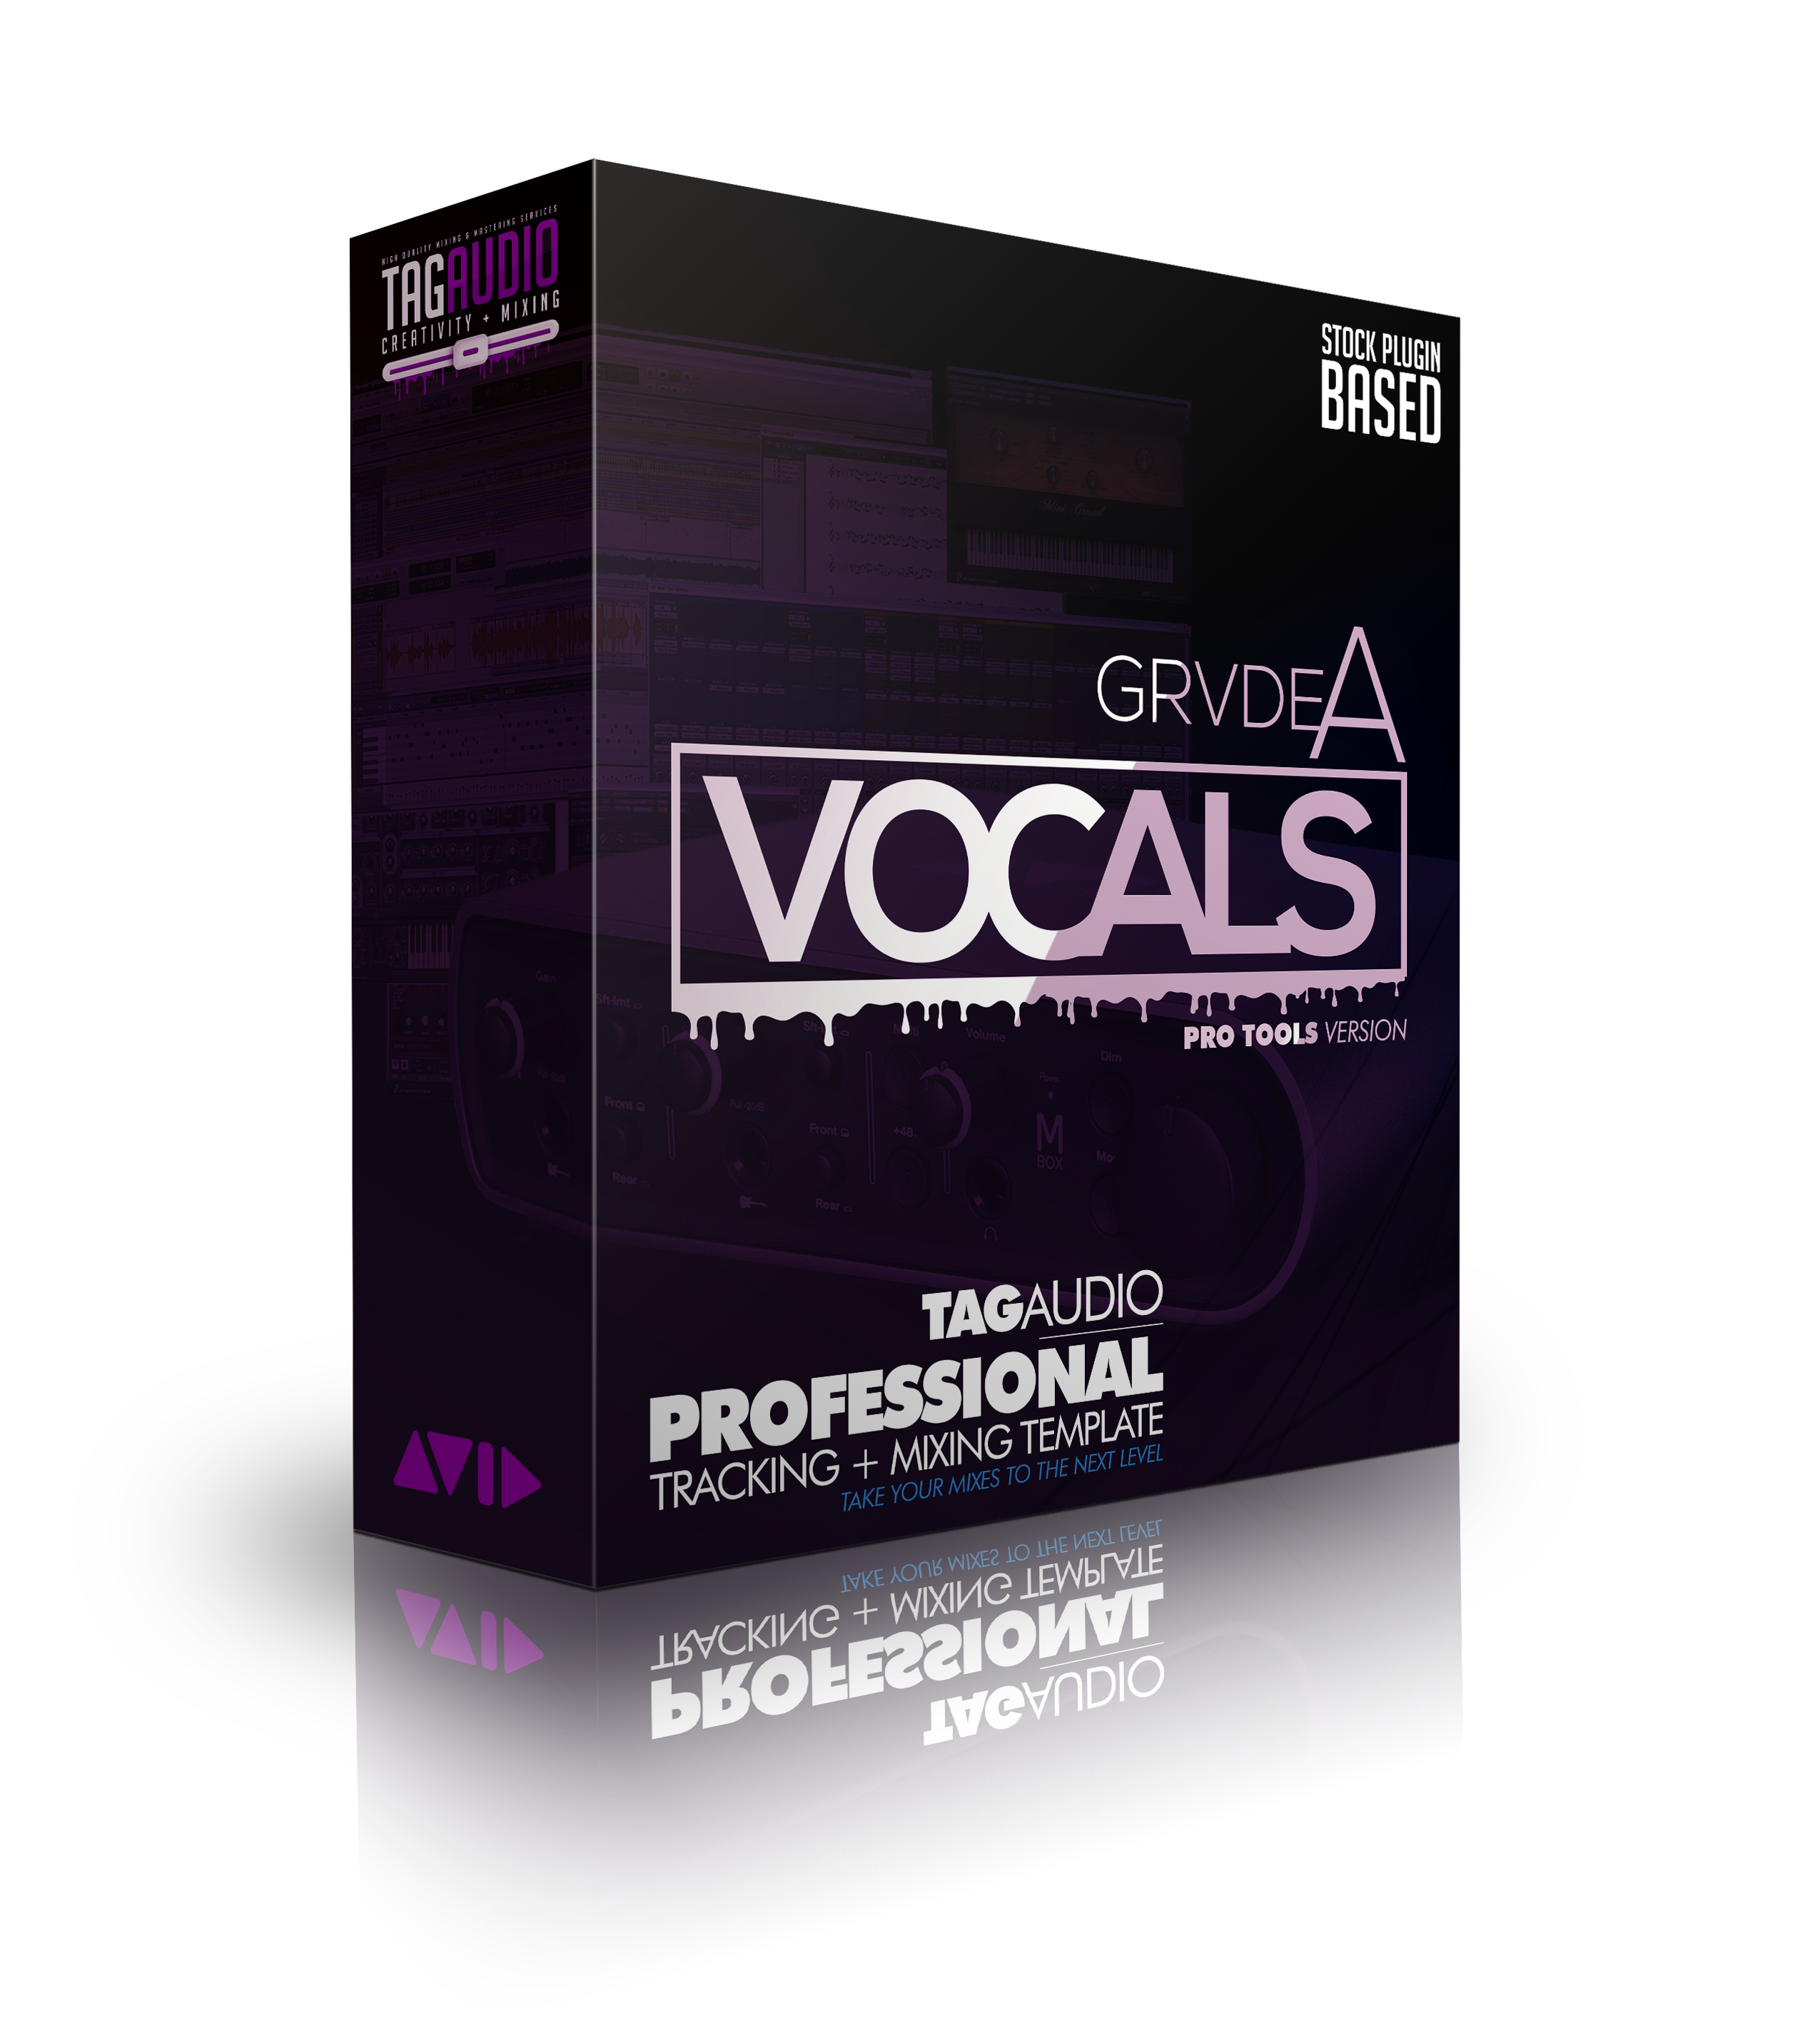 Tagaudio Tracking Mixing Pro Tools Template Built With Stock